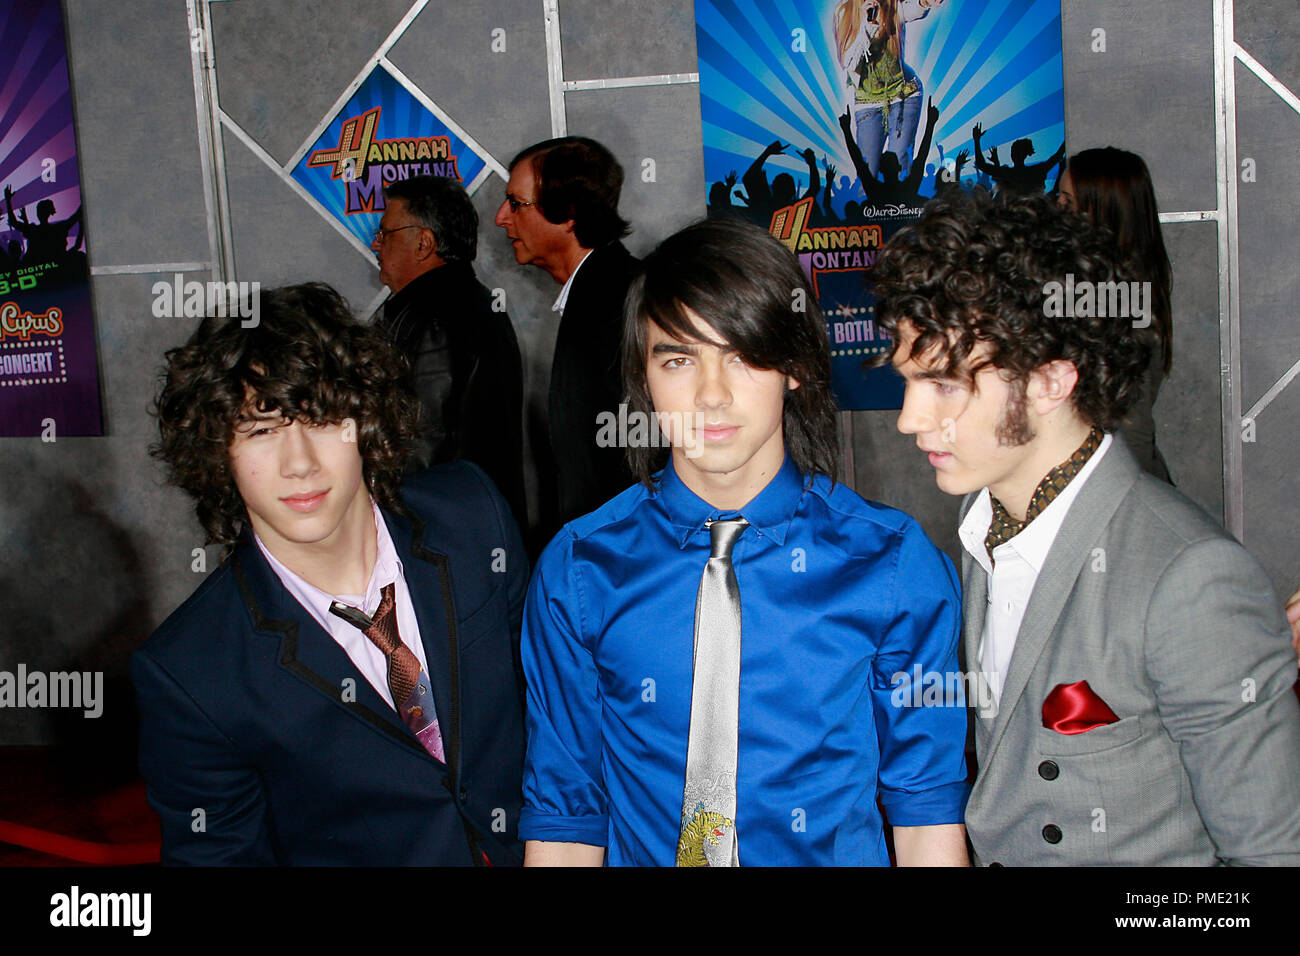 JONAS BROTHERS coloring pages - Coloring pages - Printable Coloring Pages -  Hellokids.com | 956x1300